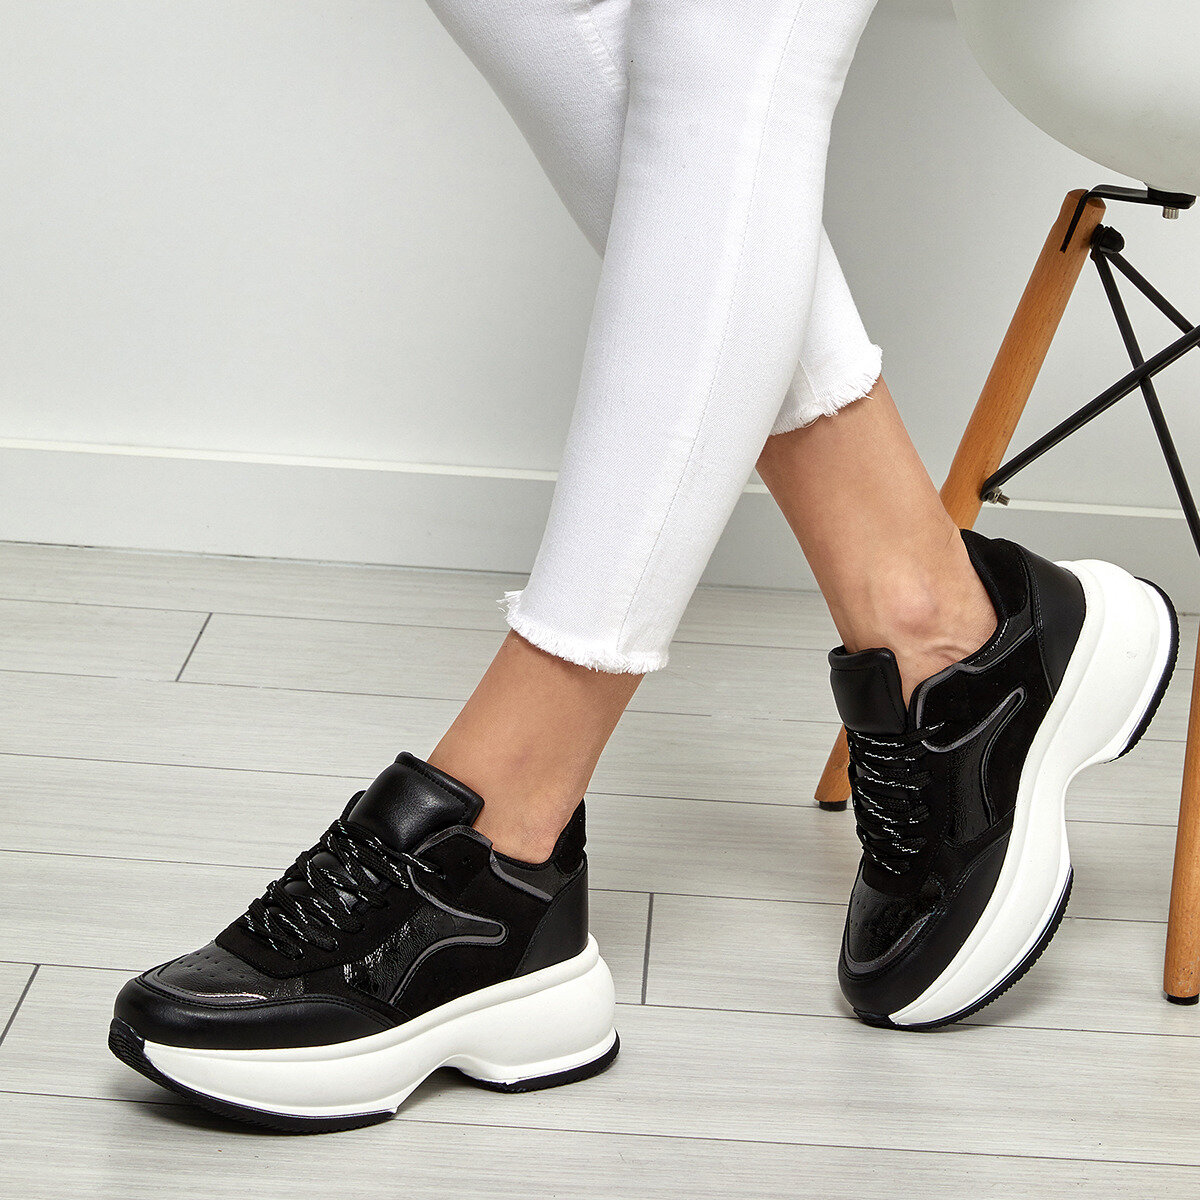 FLO Women Sneakers Black White Gray Color Women's Fashion Comfortable Lifestyle Sport Heeled Sneaker Shoes Кроссовки женские 19SF-2061 BUTIGO